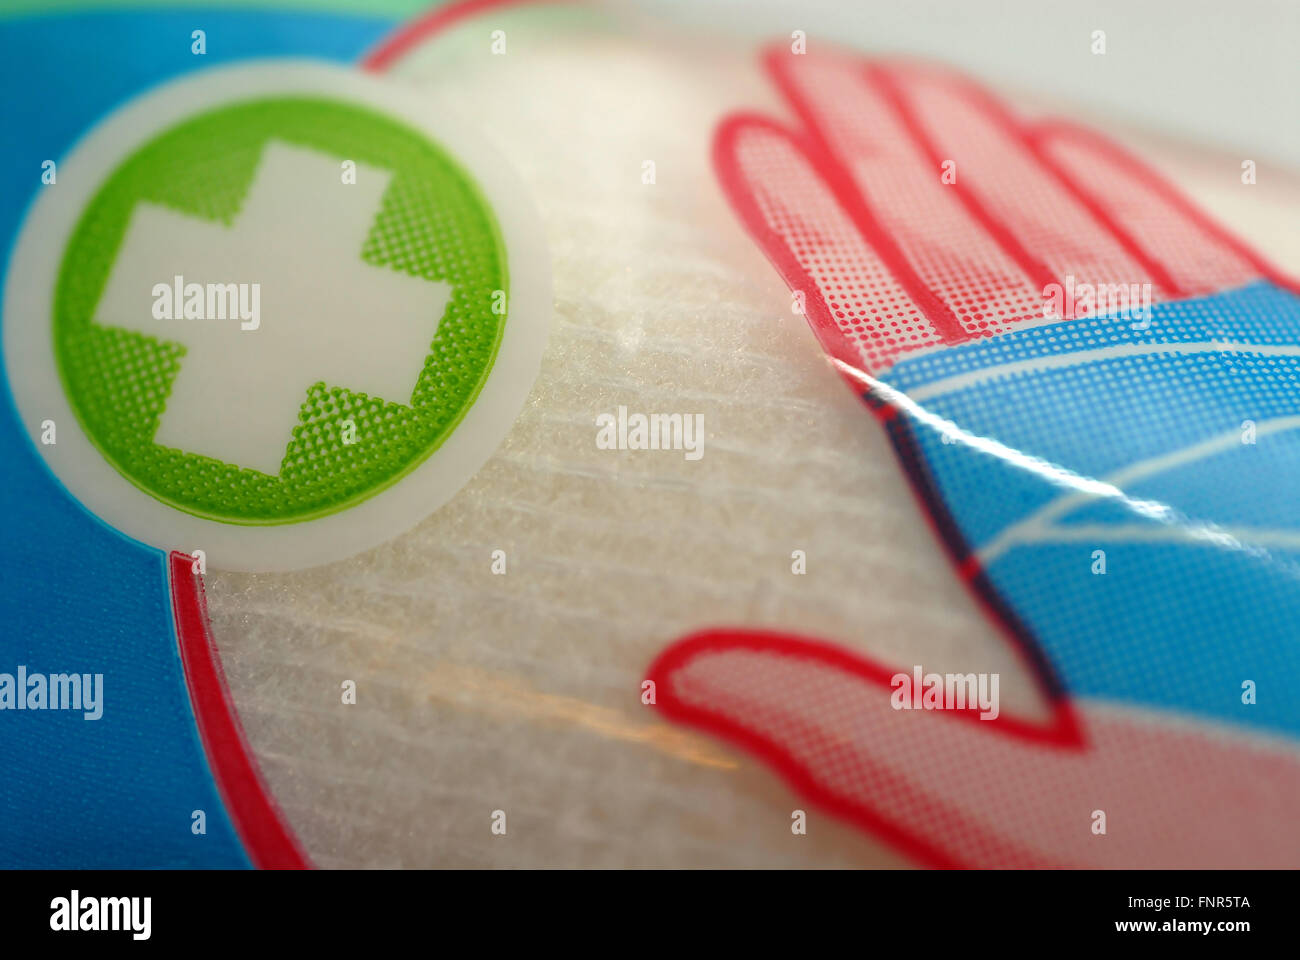 A pack of bandage used in emergencies and accidents. - Stock Image